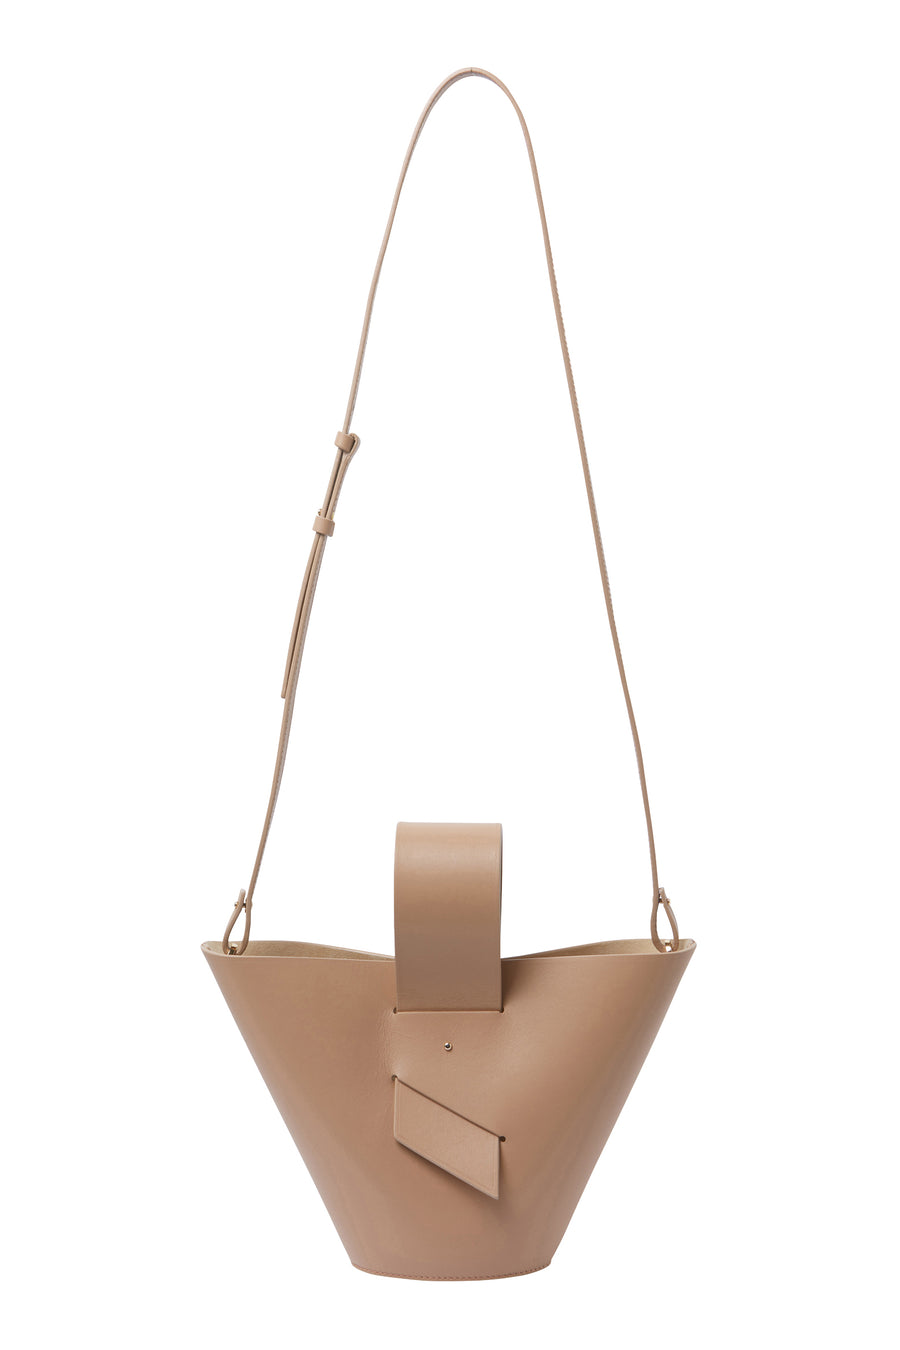 AMPHORA LEATHER TOTE